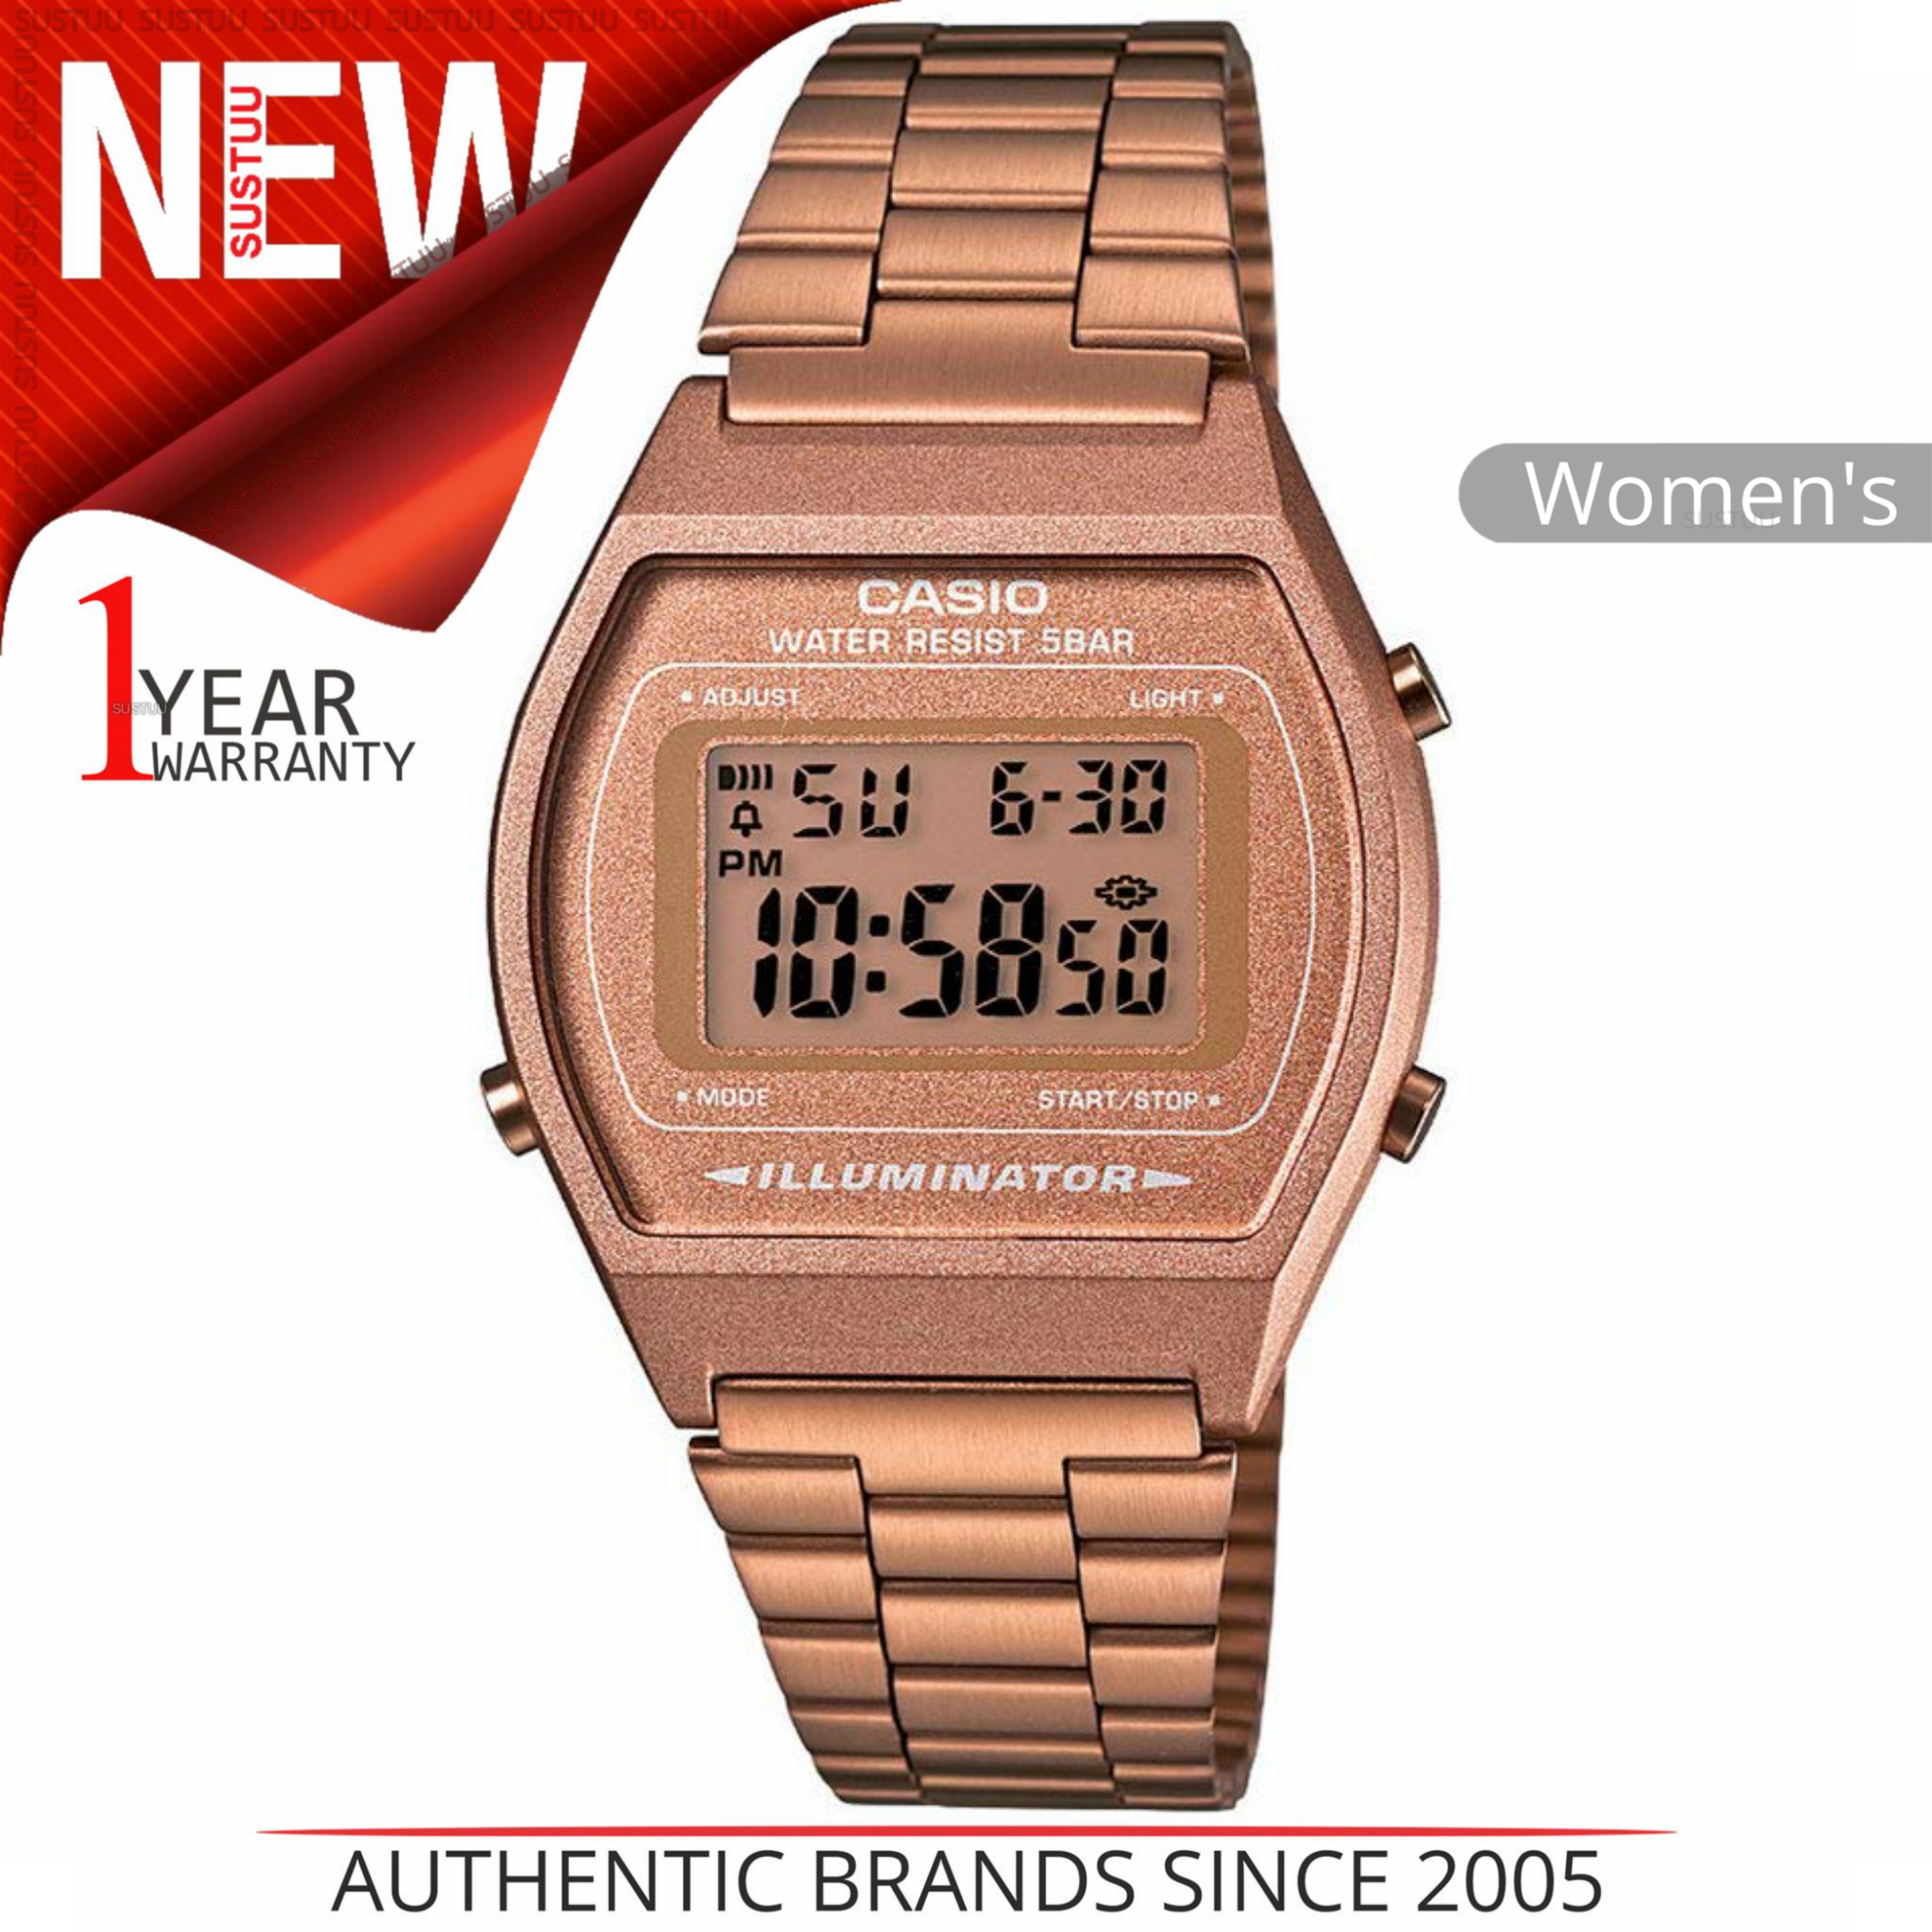 f731e786e51b CENTINELA Watch│Stainless Digital de damas Casio clásico acero Band│Rose  Gold│B640WC